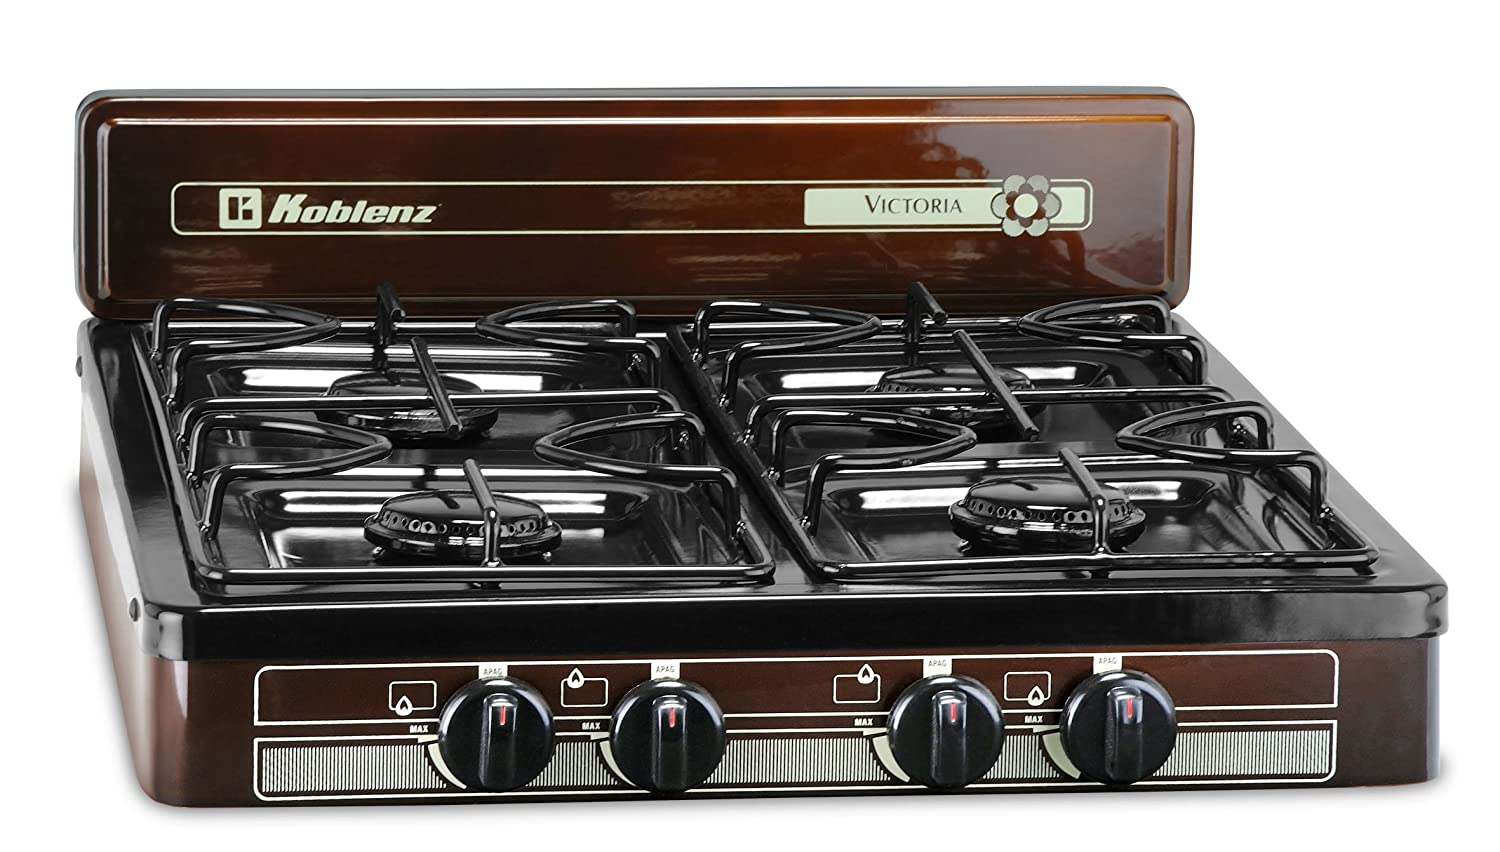 Awesome Amazon.com : Koblenz PFK 400 Victoria 4 Burner Gas Stove, Bronze : Sports U0026  Outdoors